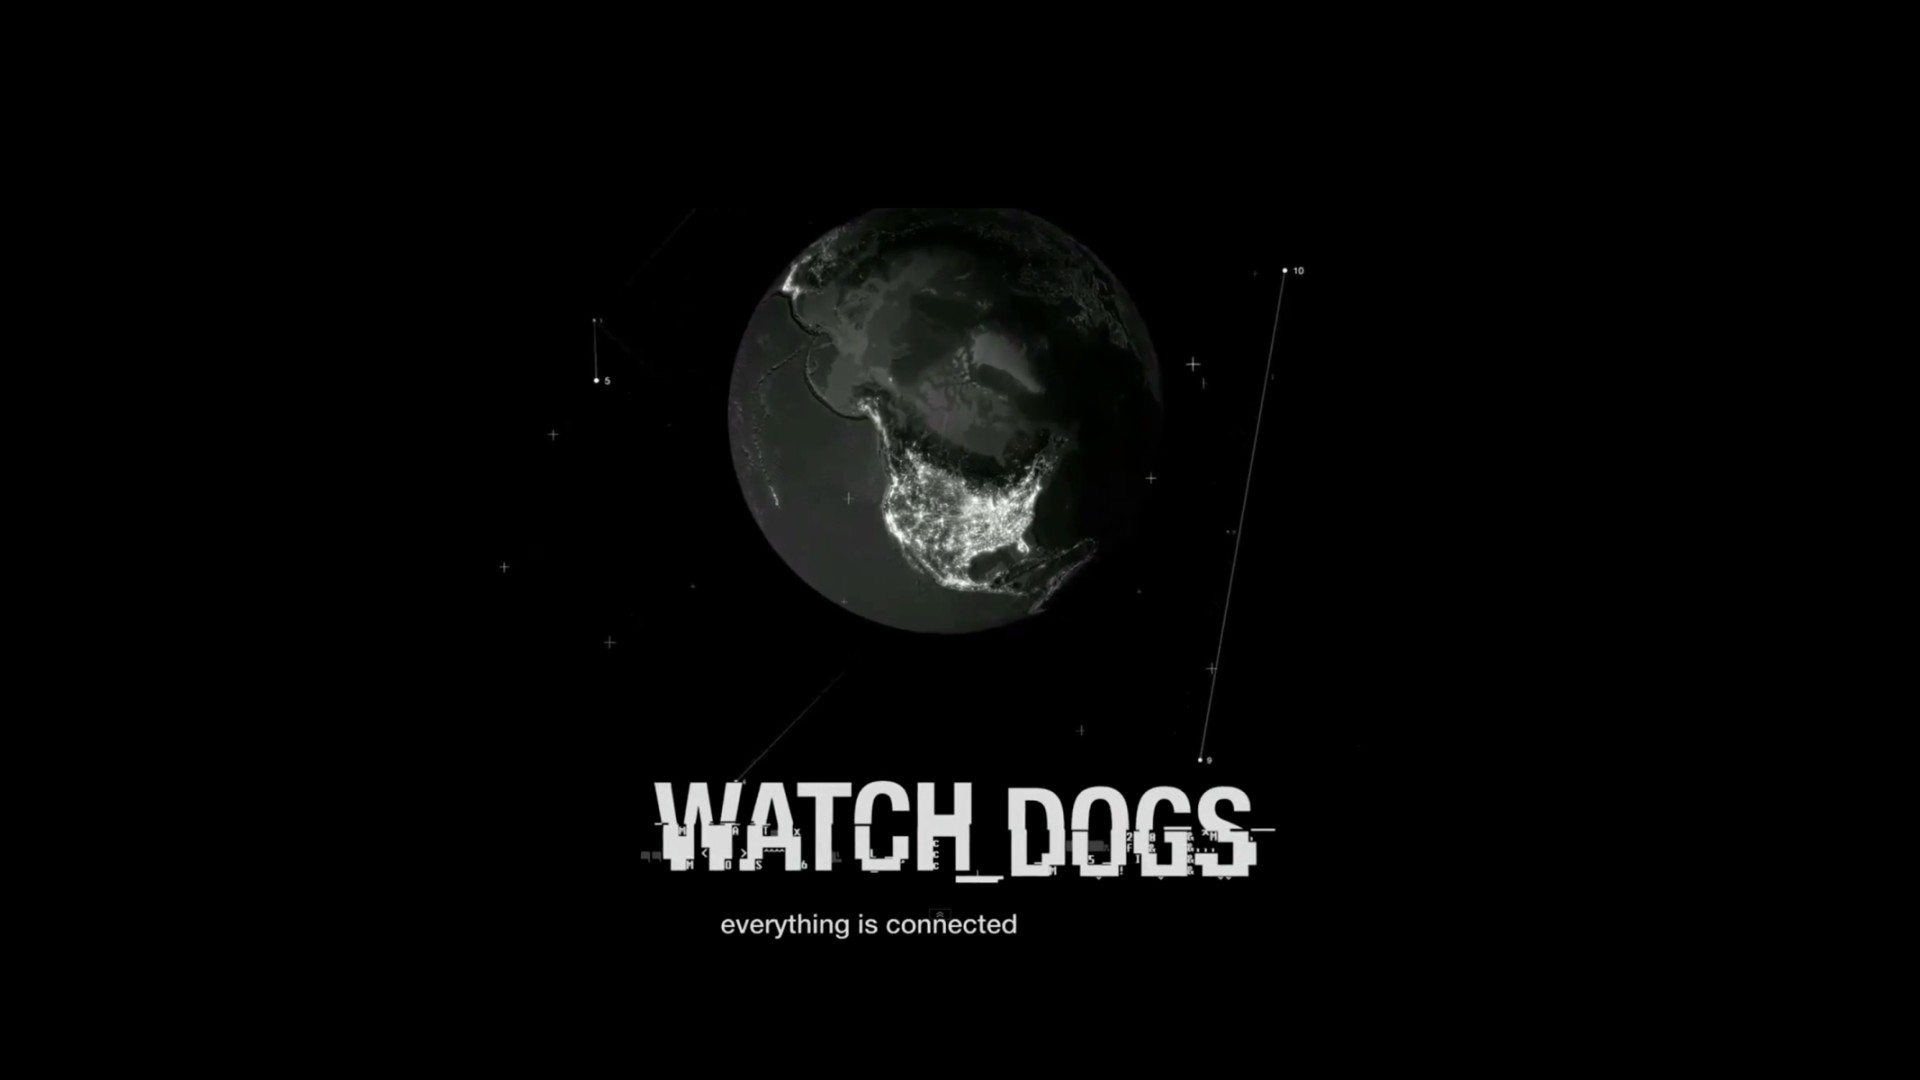 1920x1080 Free Download Watch Dogs Font Black Background HD Wallpaper Image